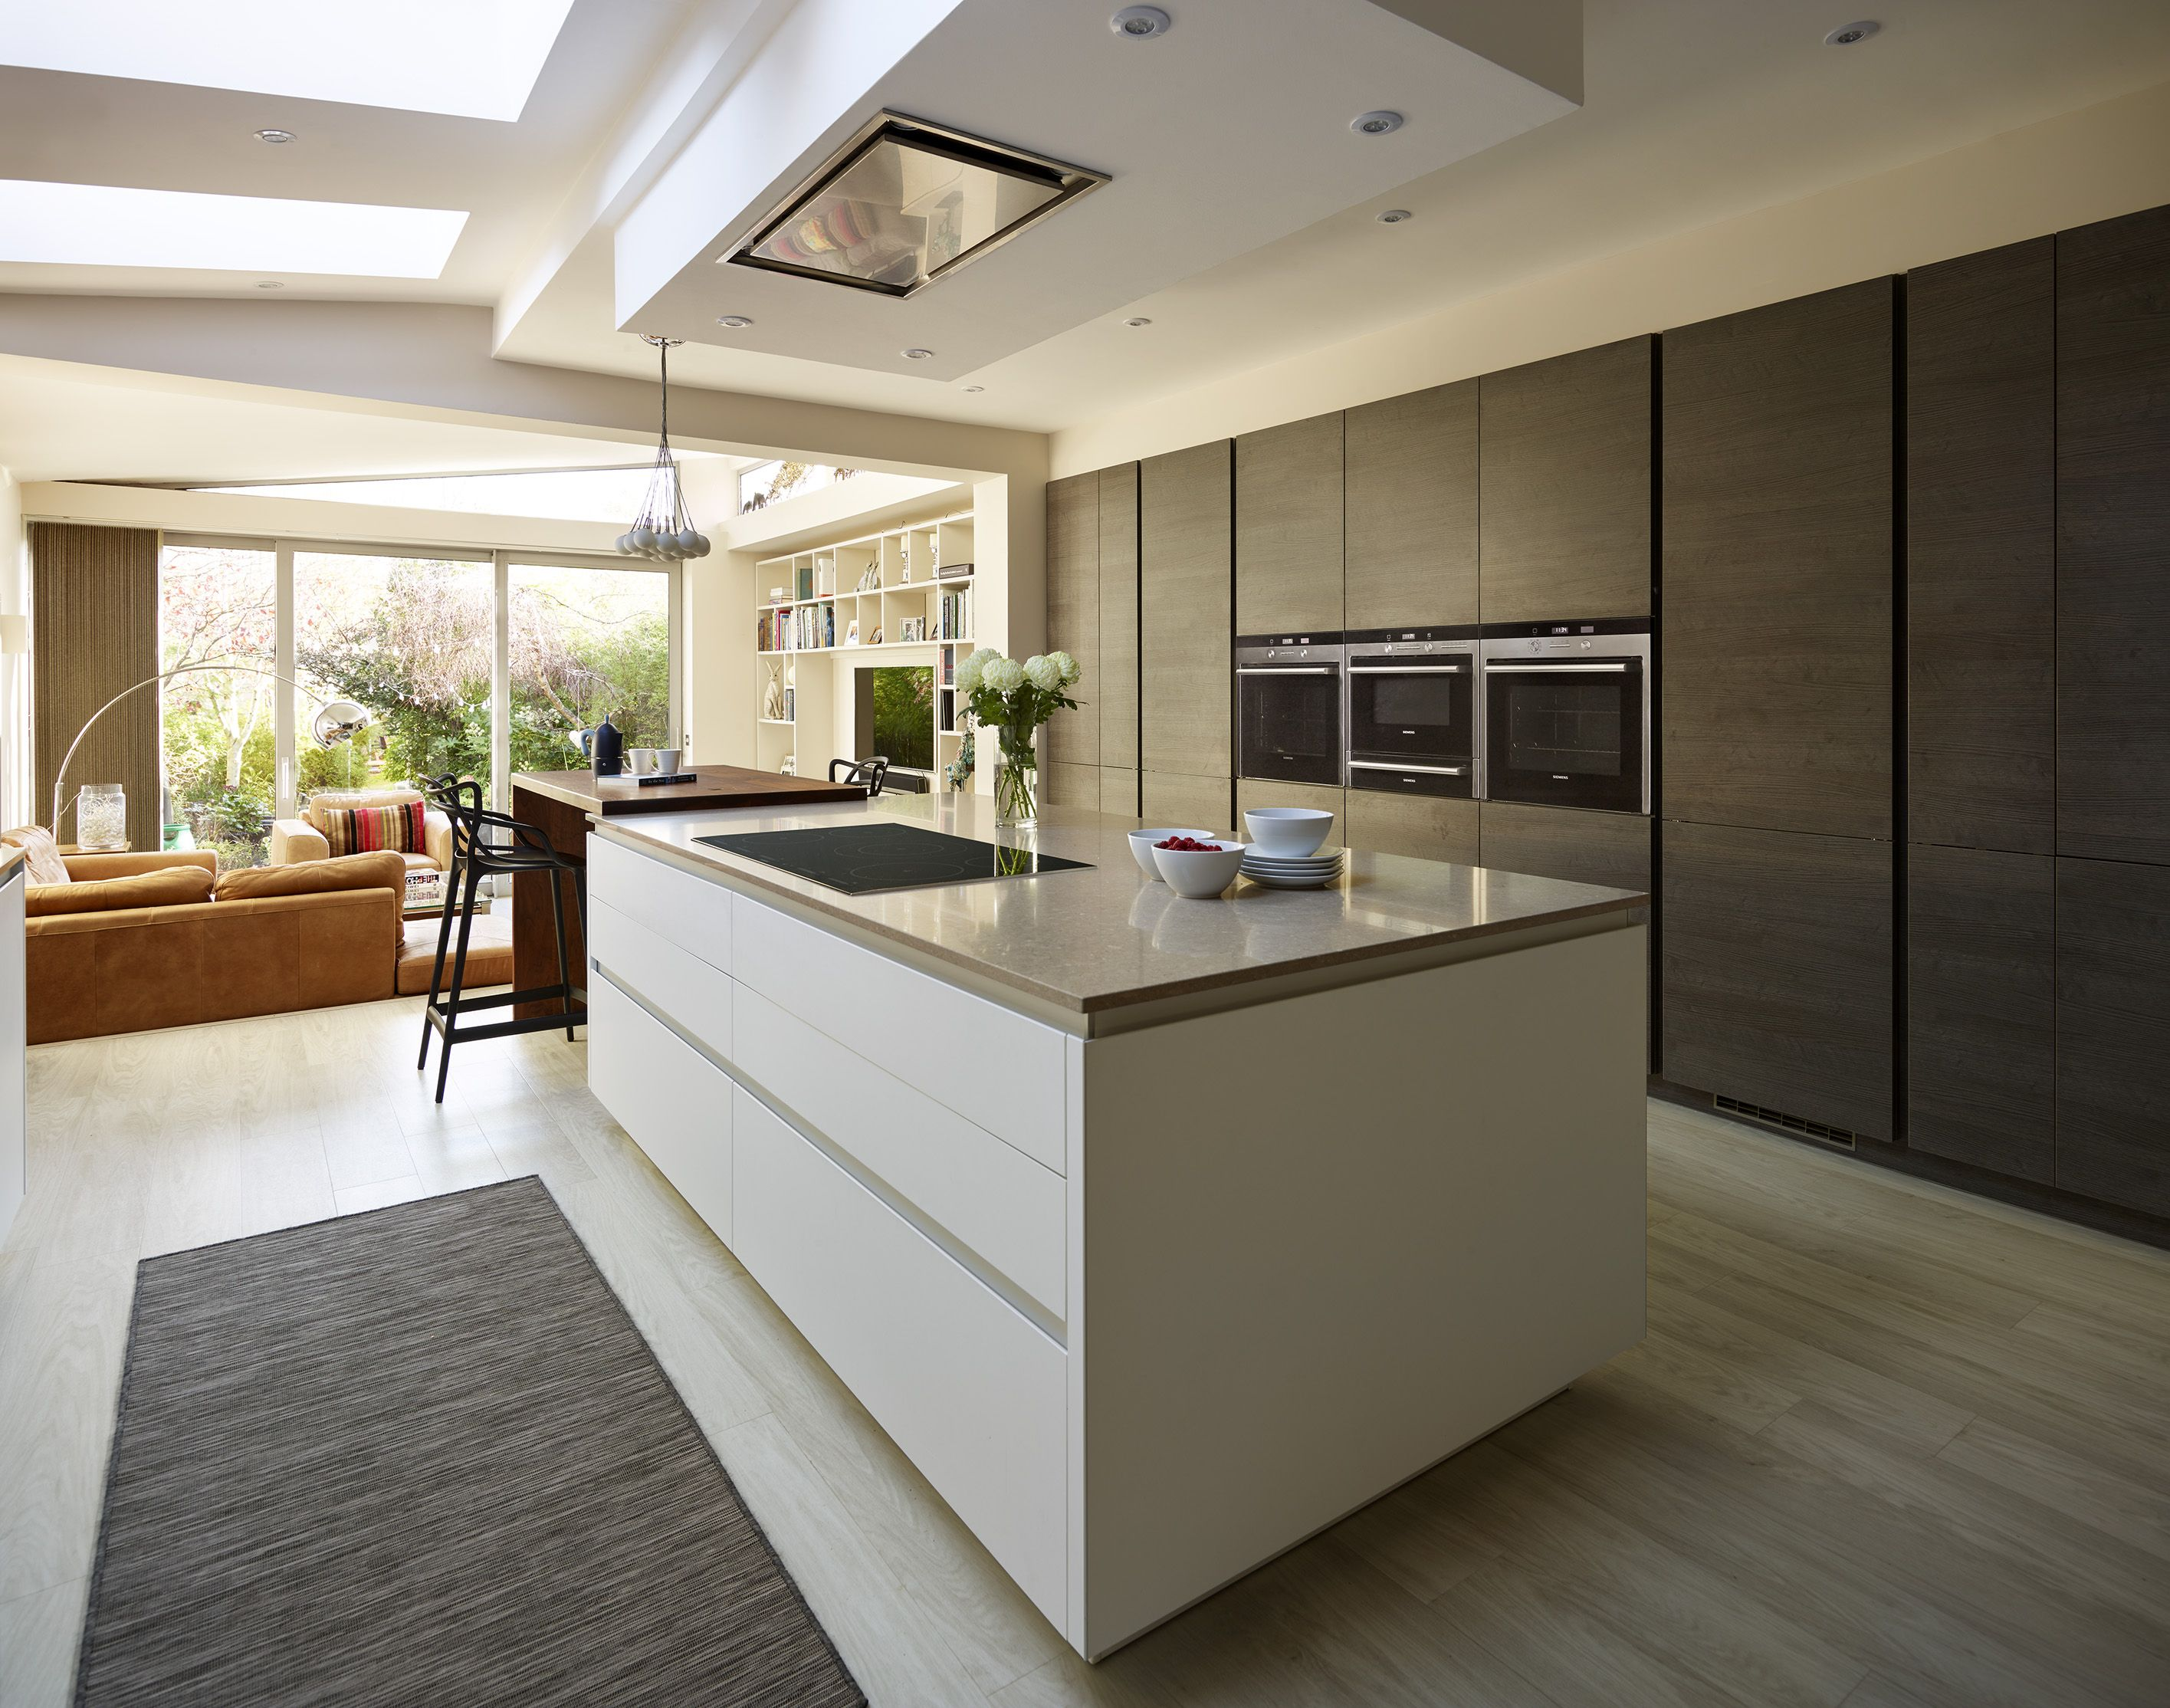 Walnut Kitchen Floor Harrington Walnut Kitchen Bespoke Kitchens Tom Howley